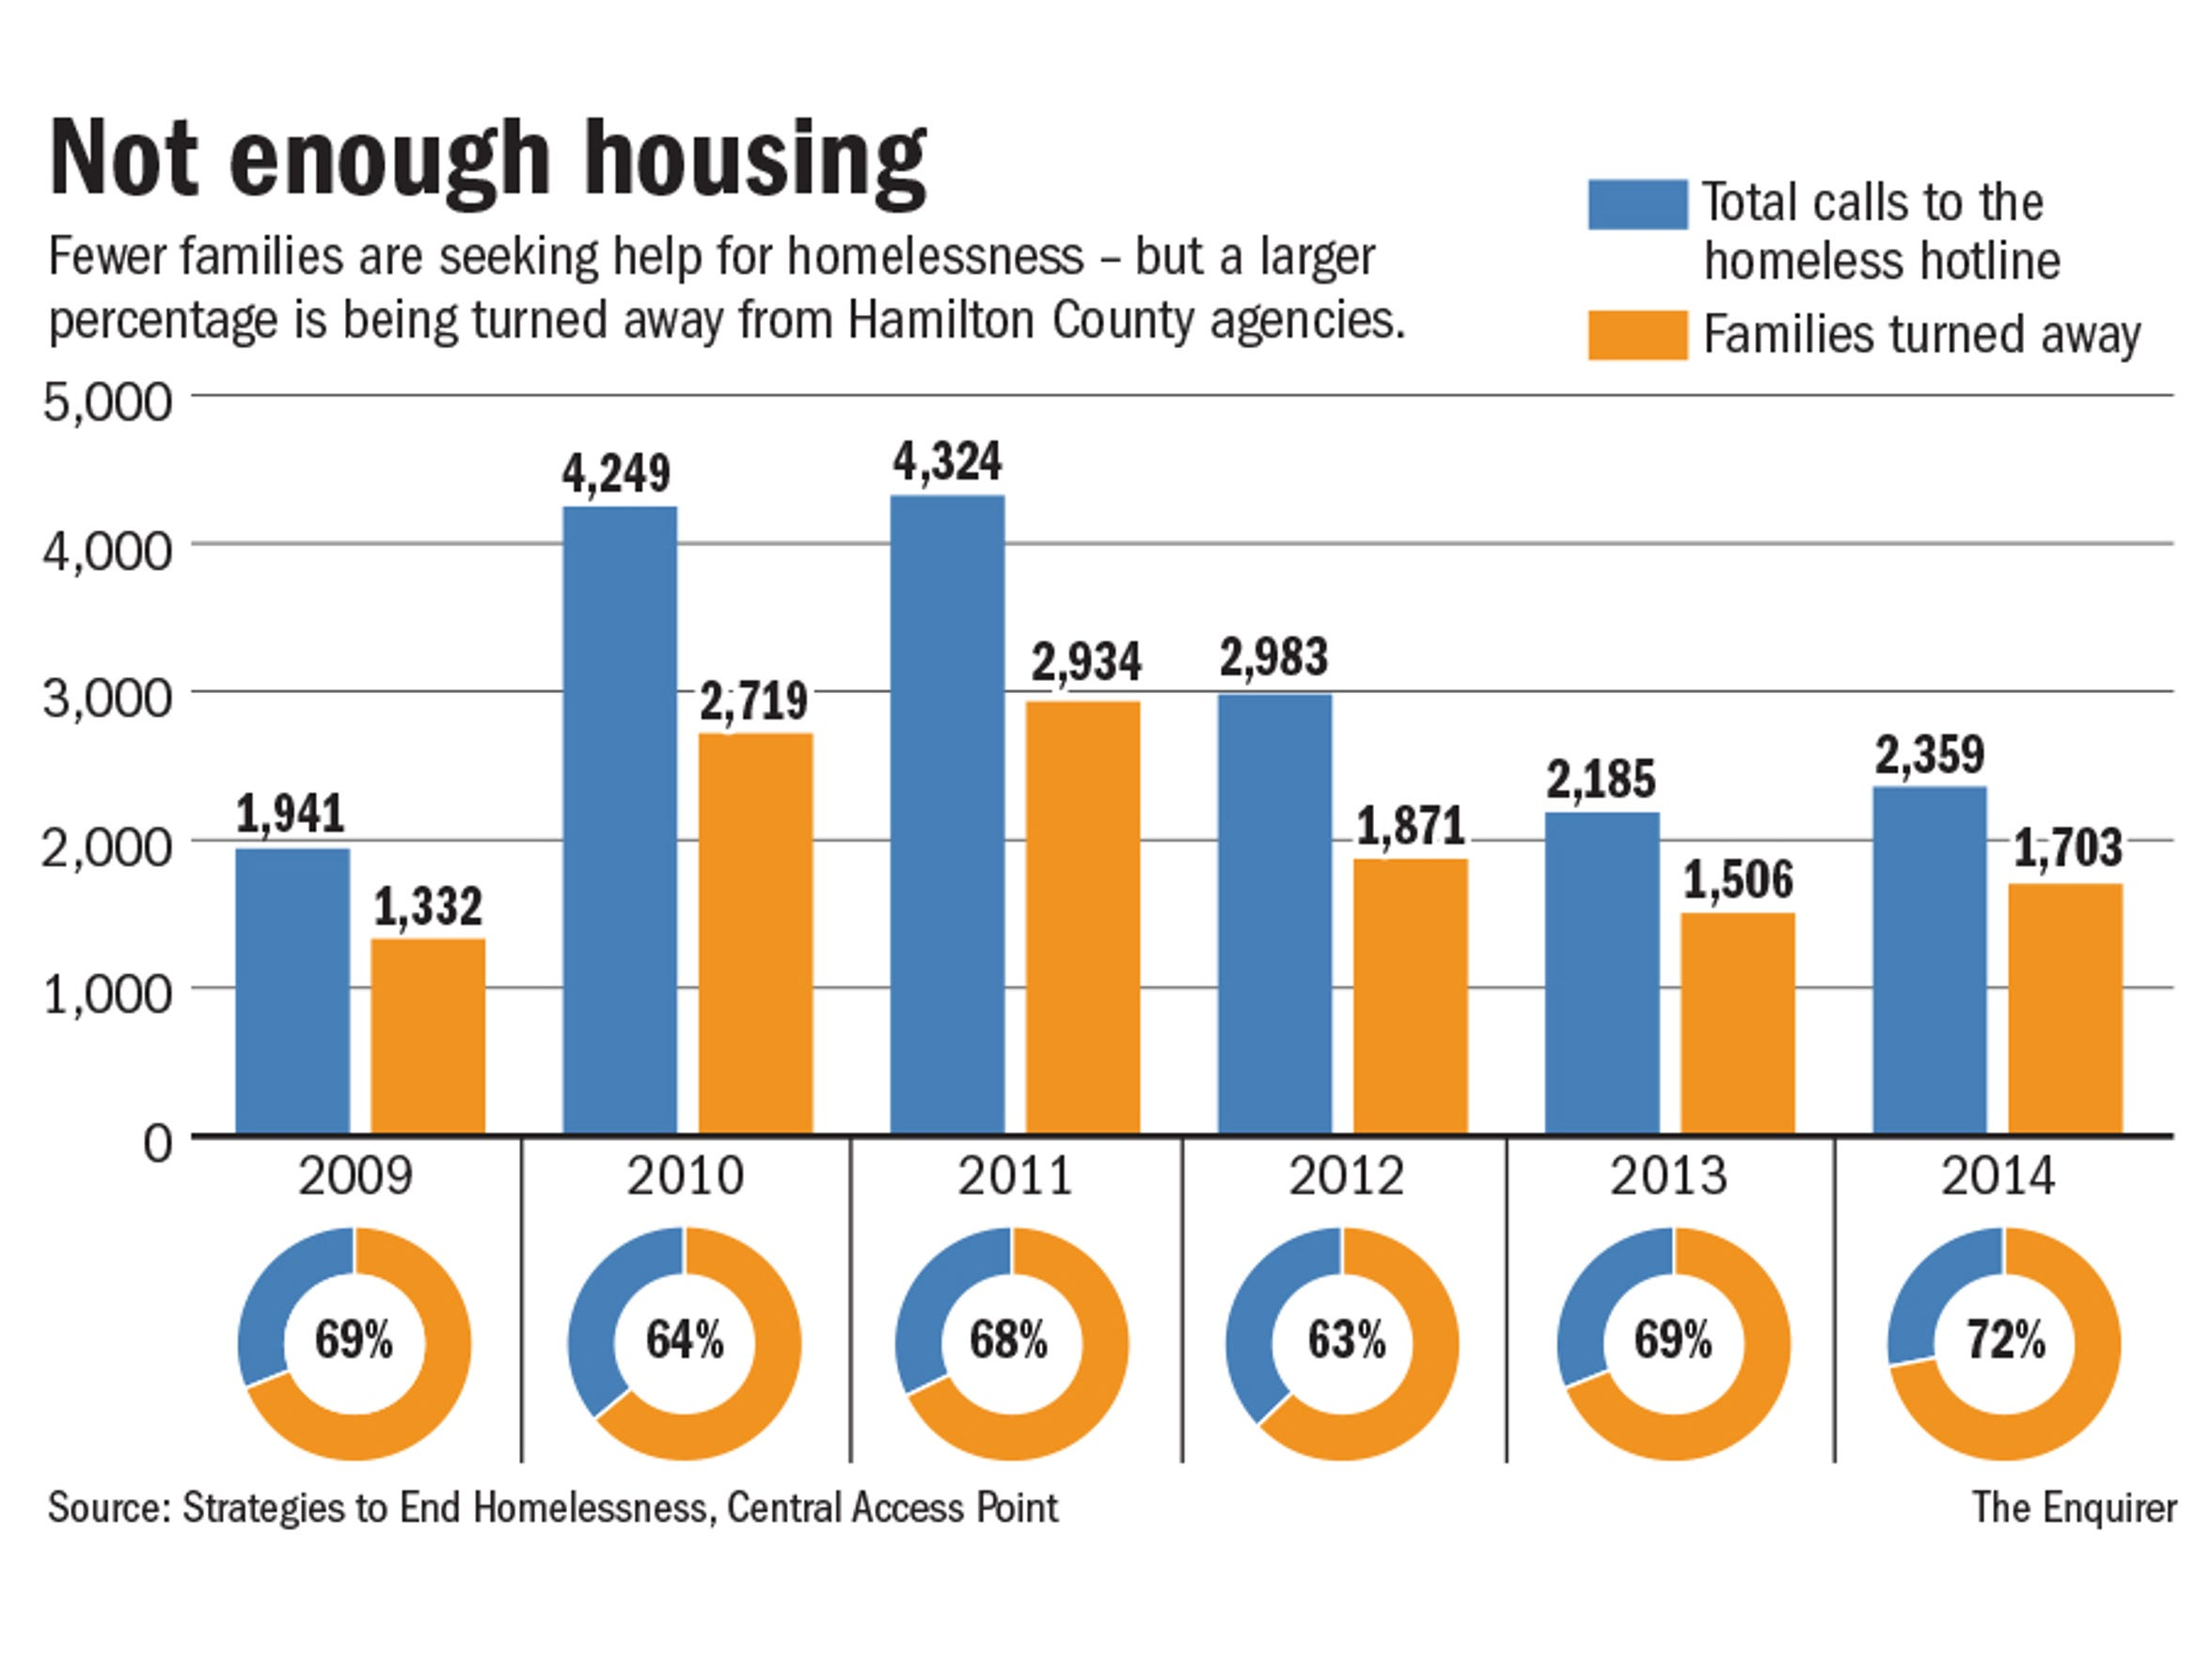 Comparison of families that called the hotline to families